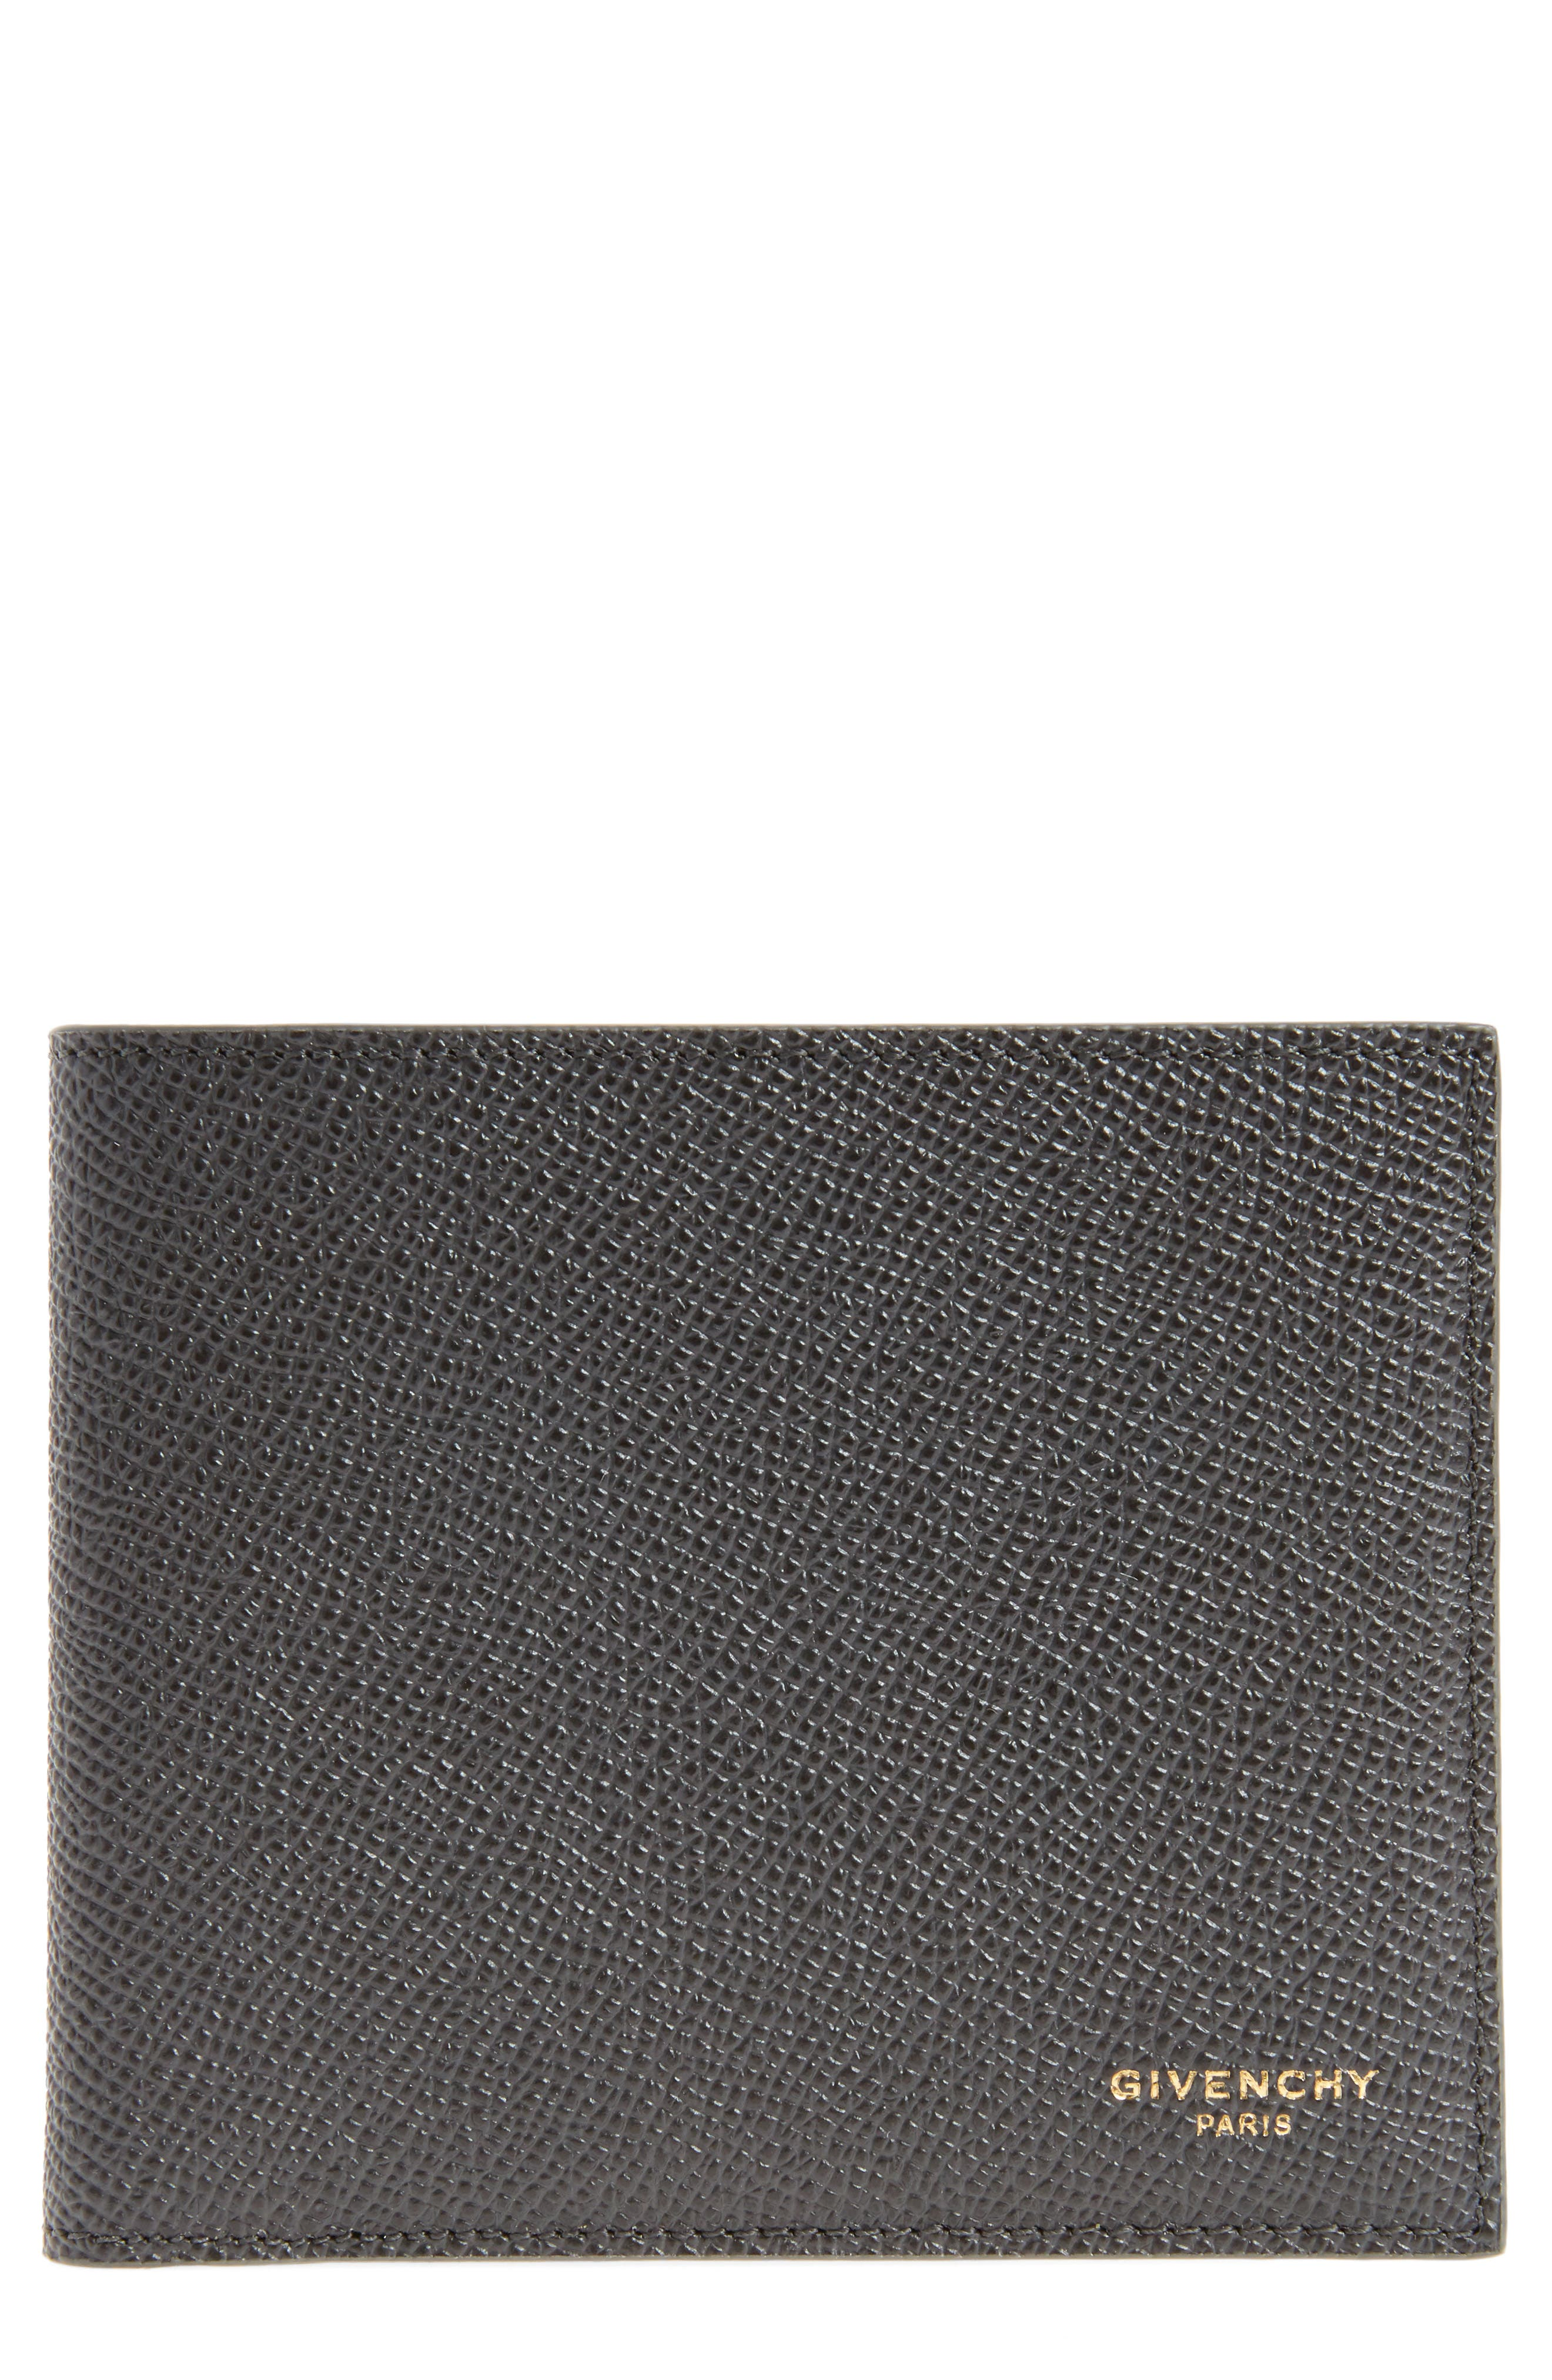 Main Image - Givenchy Calfskin Leather Bifold Wallet